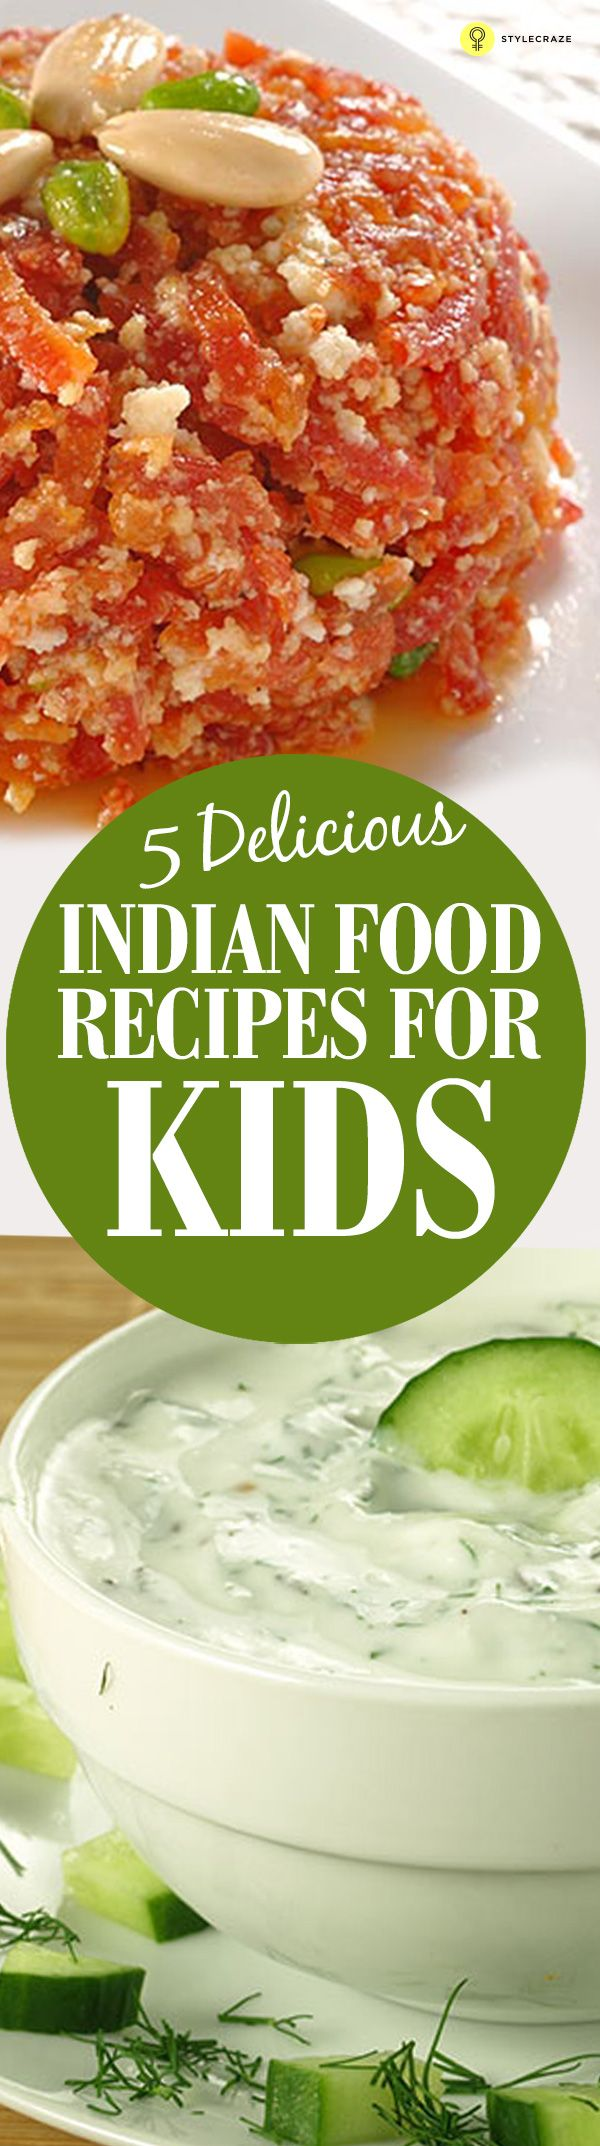 5 must try sanjeev kapoor recipes for kids indian food recipes indian food recipes for kids top 5 forumfinder Images